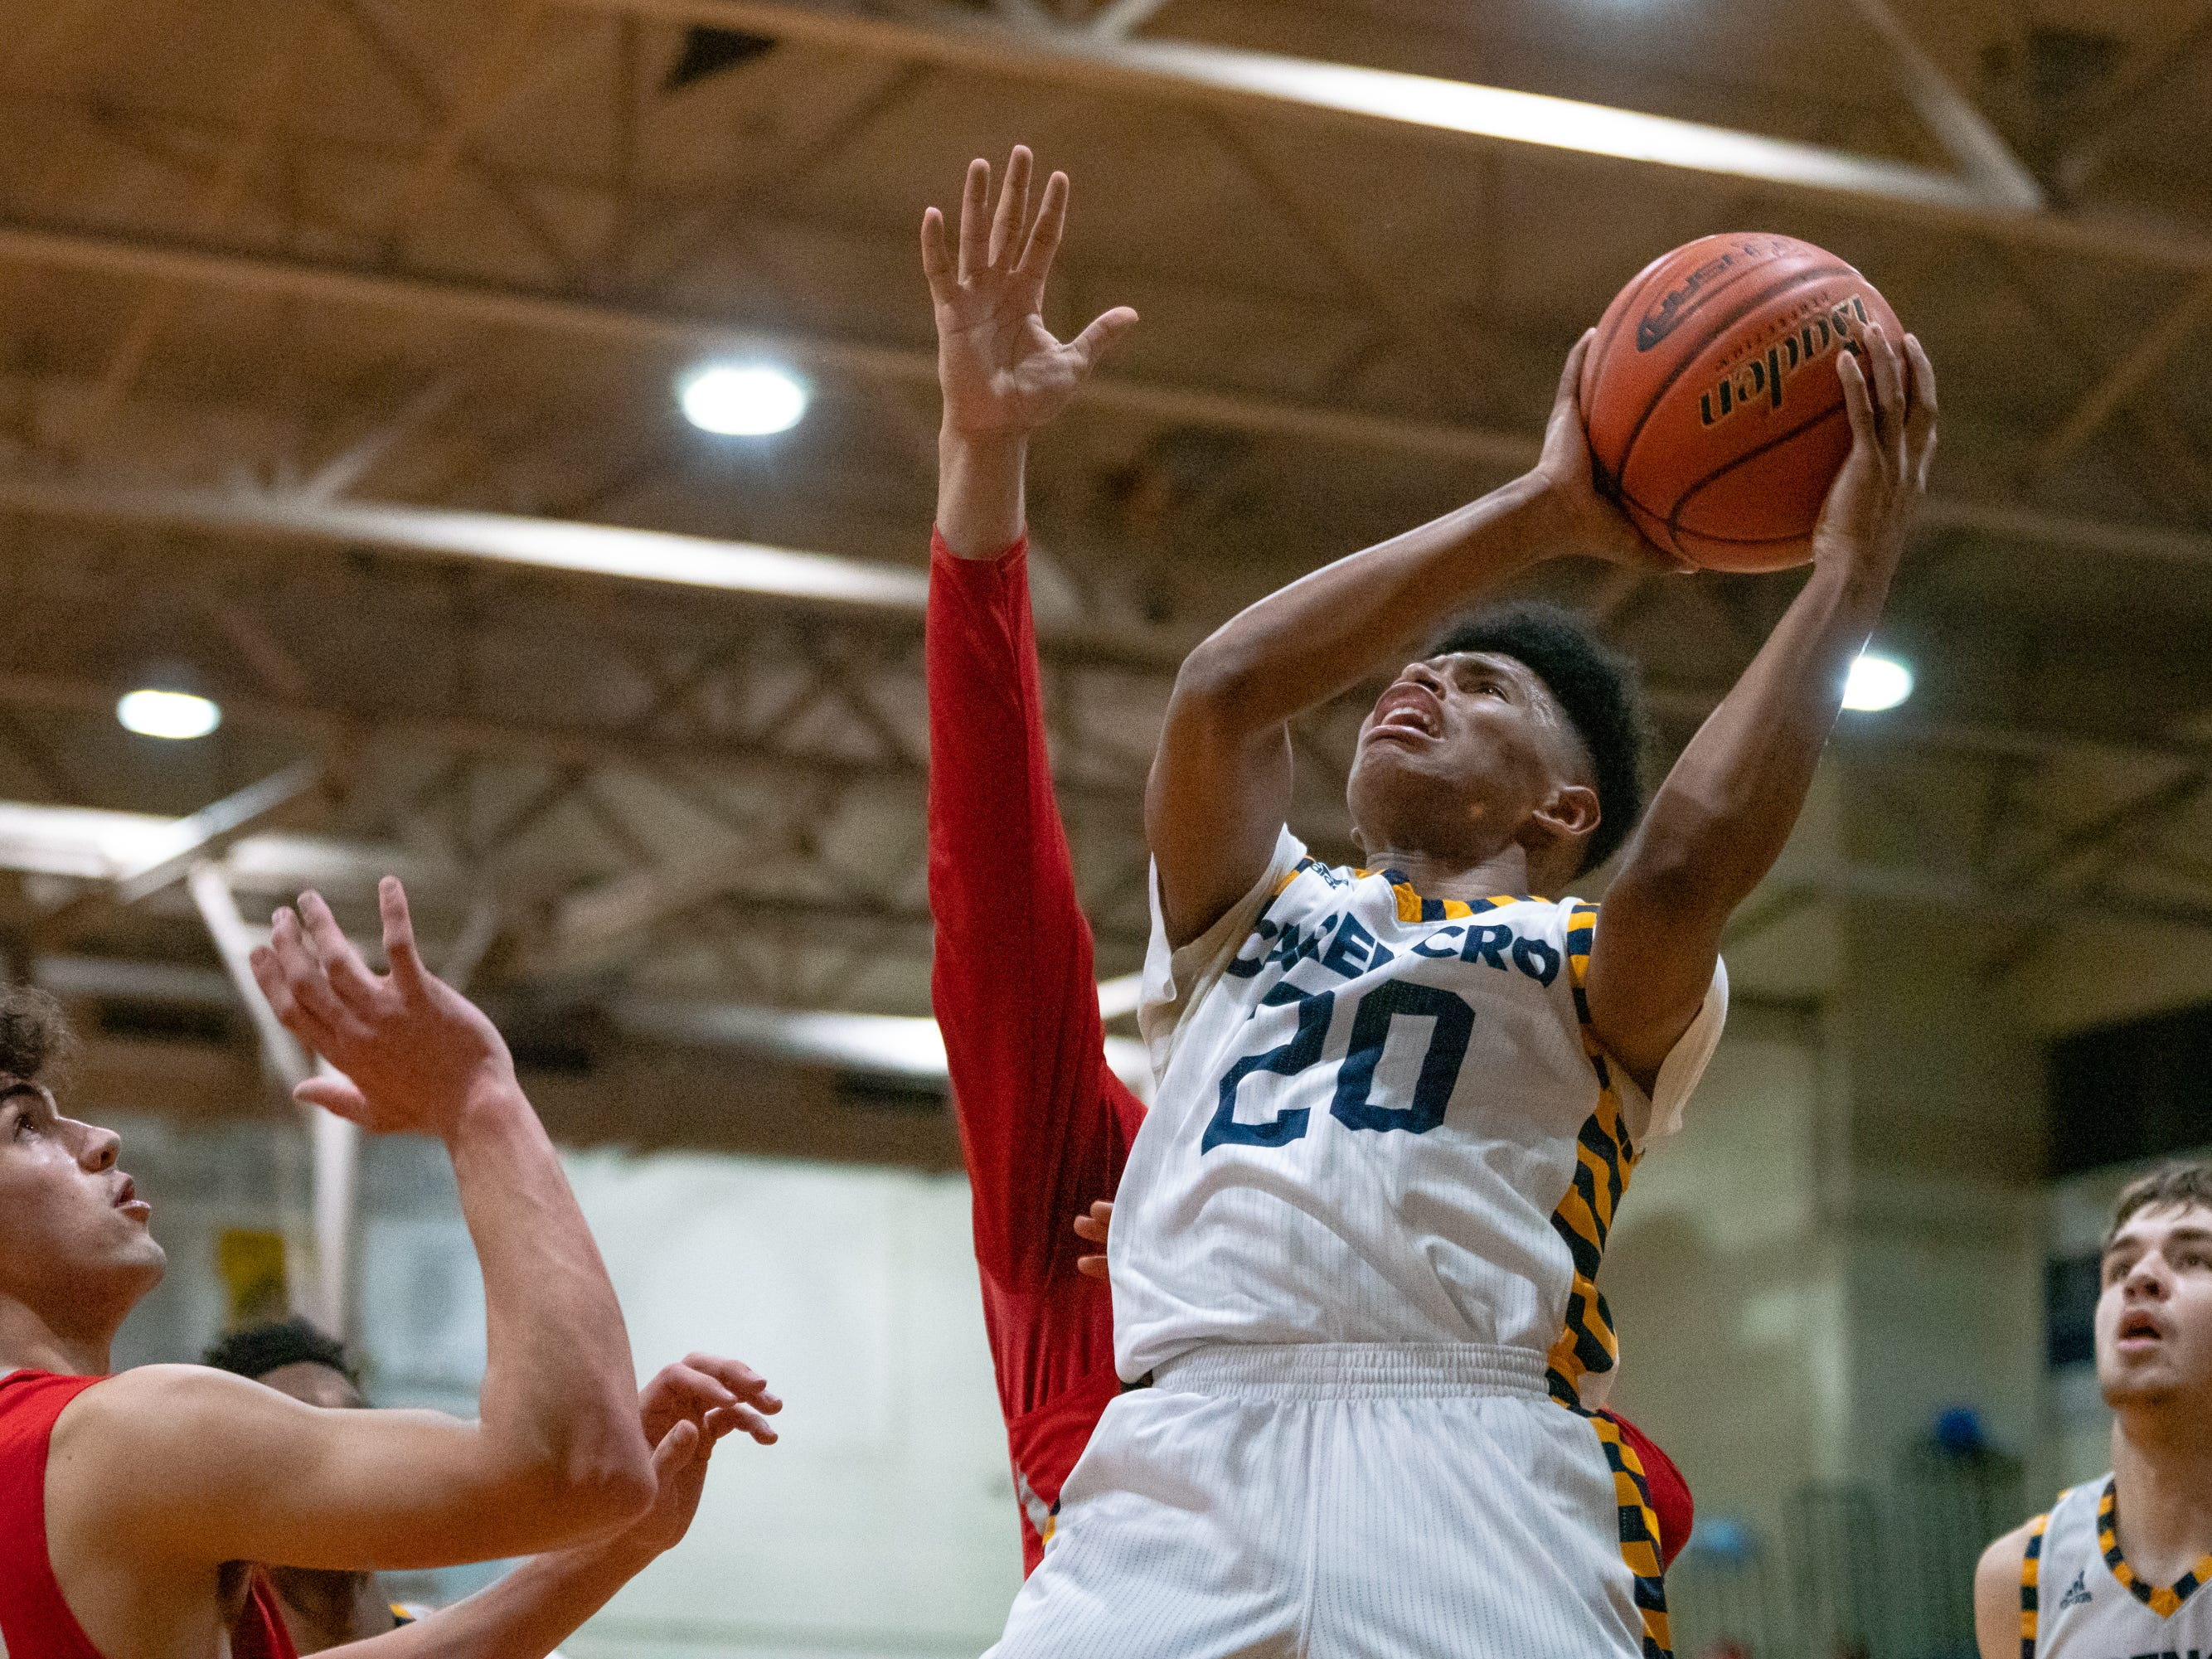 Carencro High's Jatrell Marks takes a shot underneath the goal as the Carencro High Bears take on the Pearl River Rebels at home on Friday, Feb. 22, 2019.